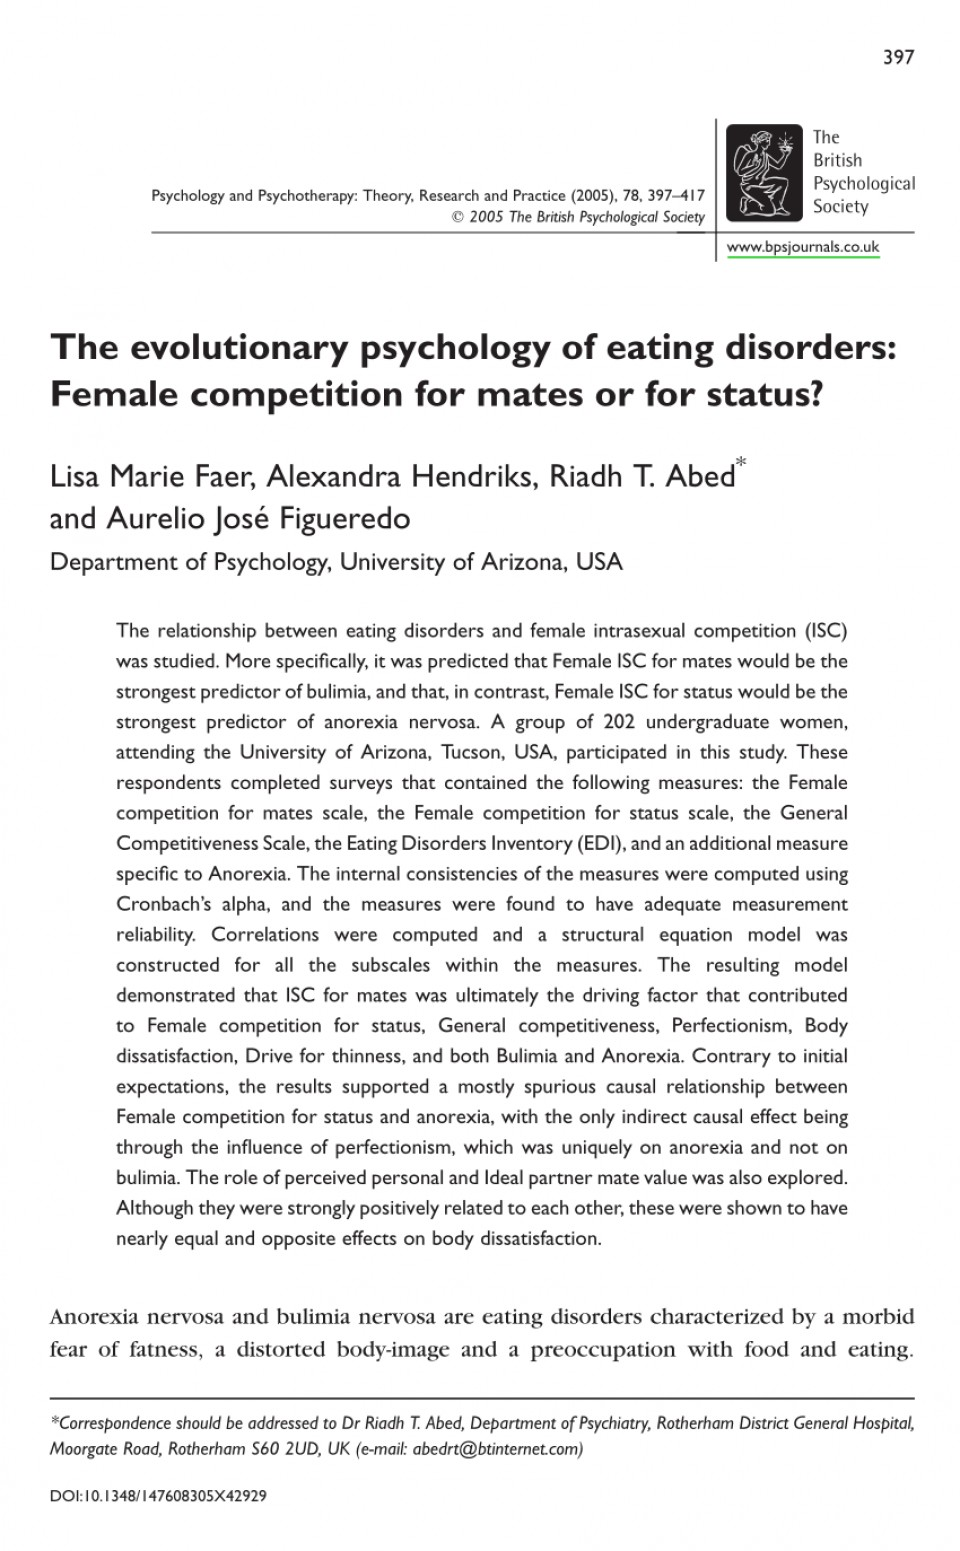 006 Psychology Research Paper On Eating Disorders Top Study Topics 960